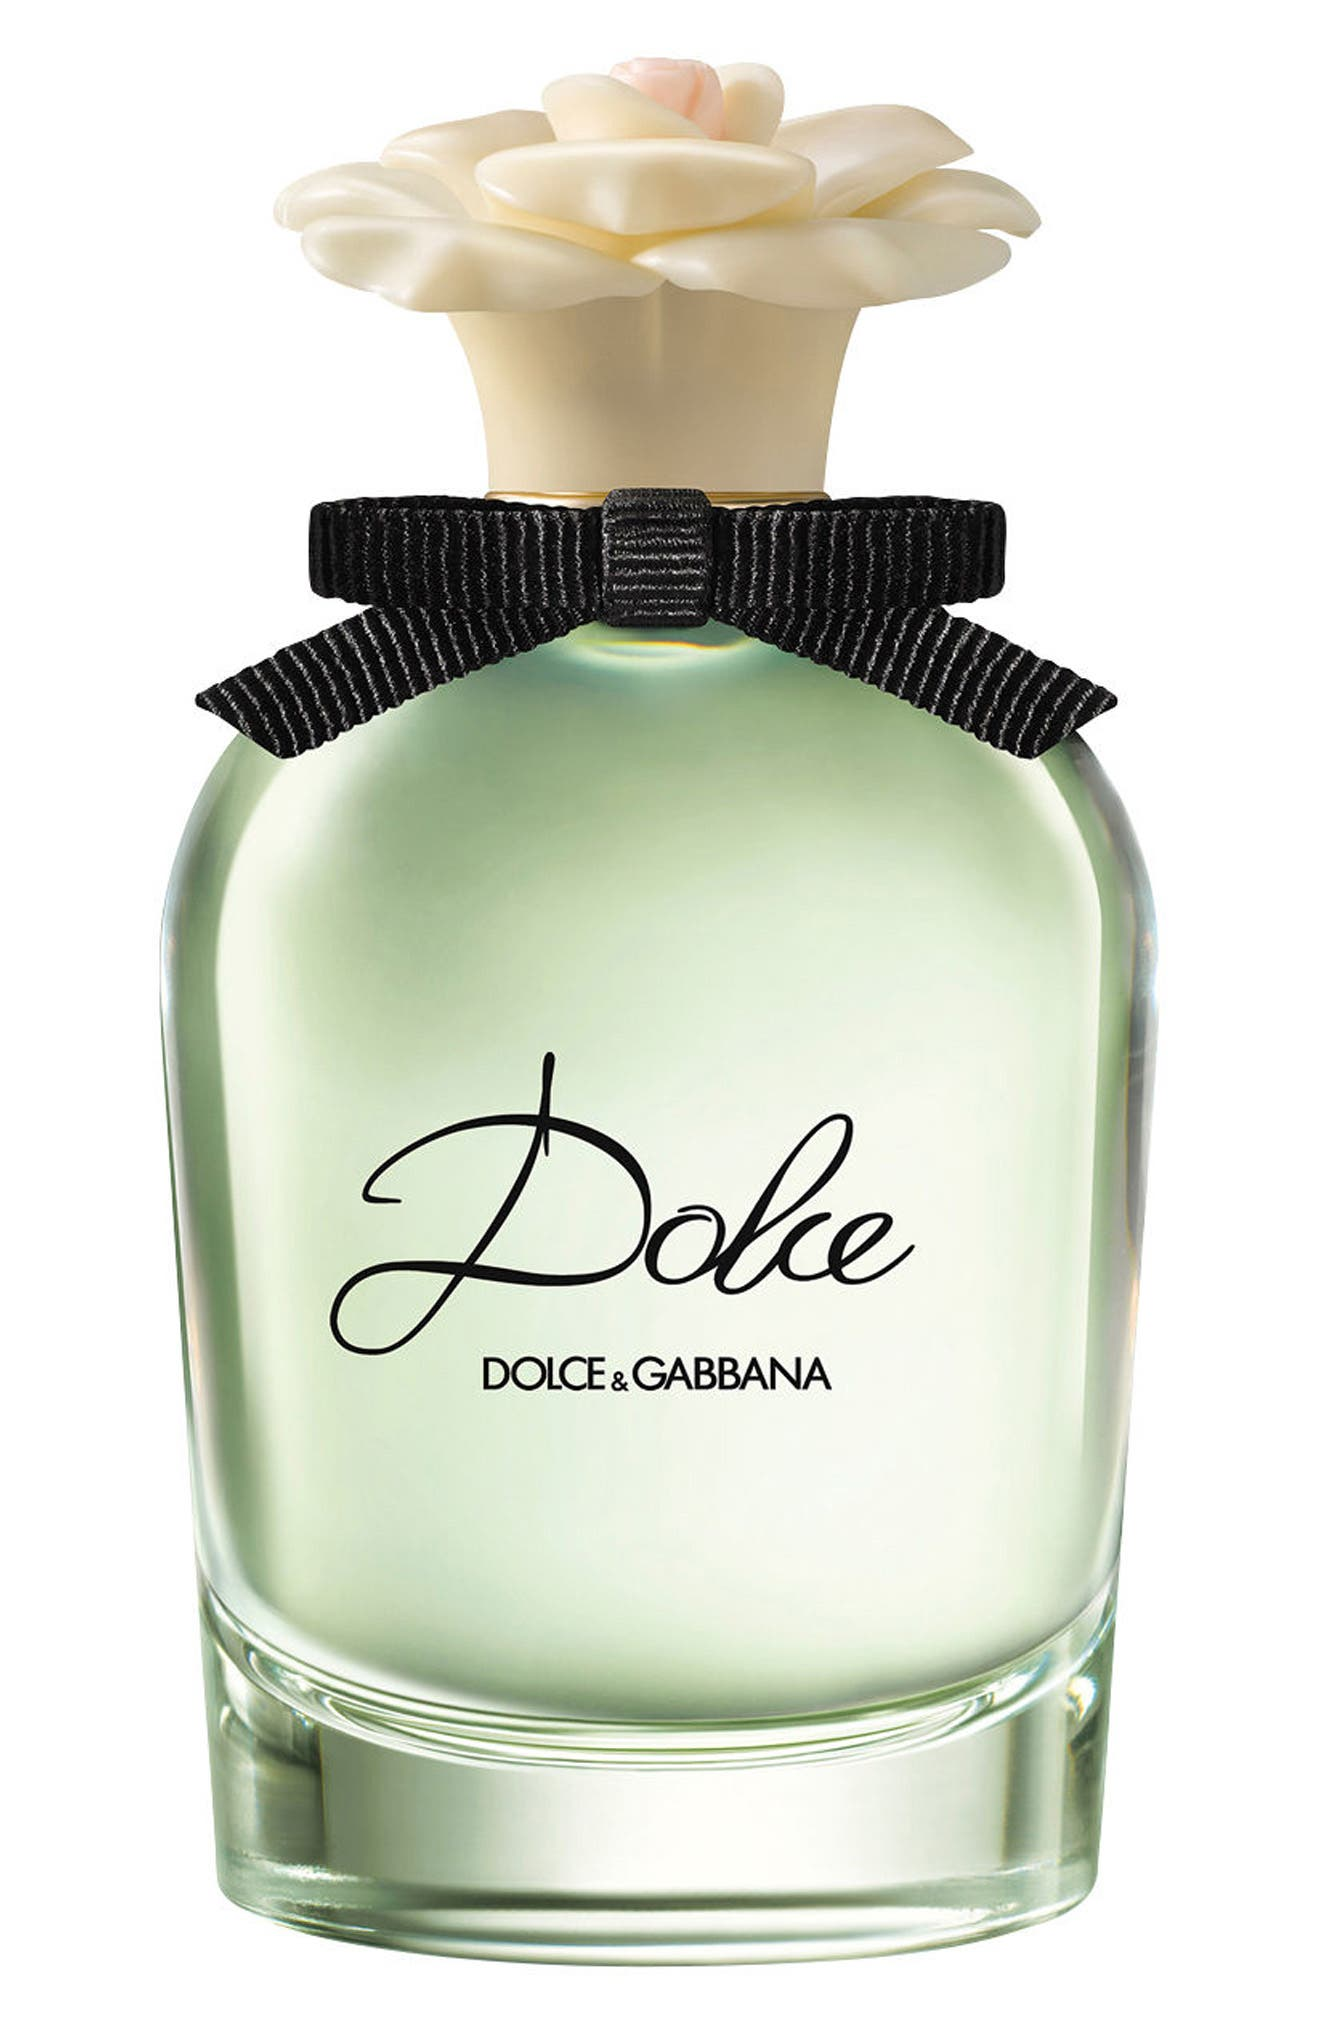 Gabbana Beauty 'Dolce' Eau de Parfum Spray,                             Main thumbnail 1, color,                             NO COLOR